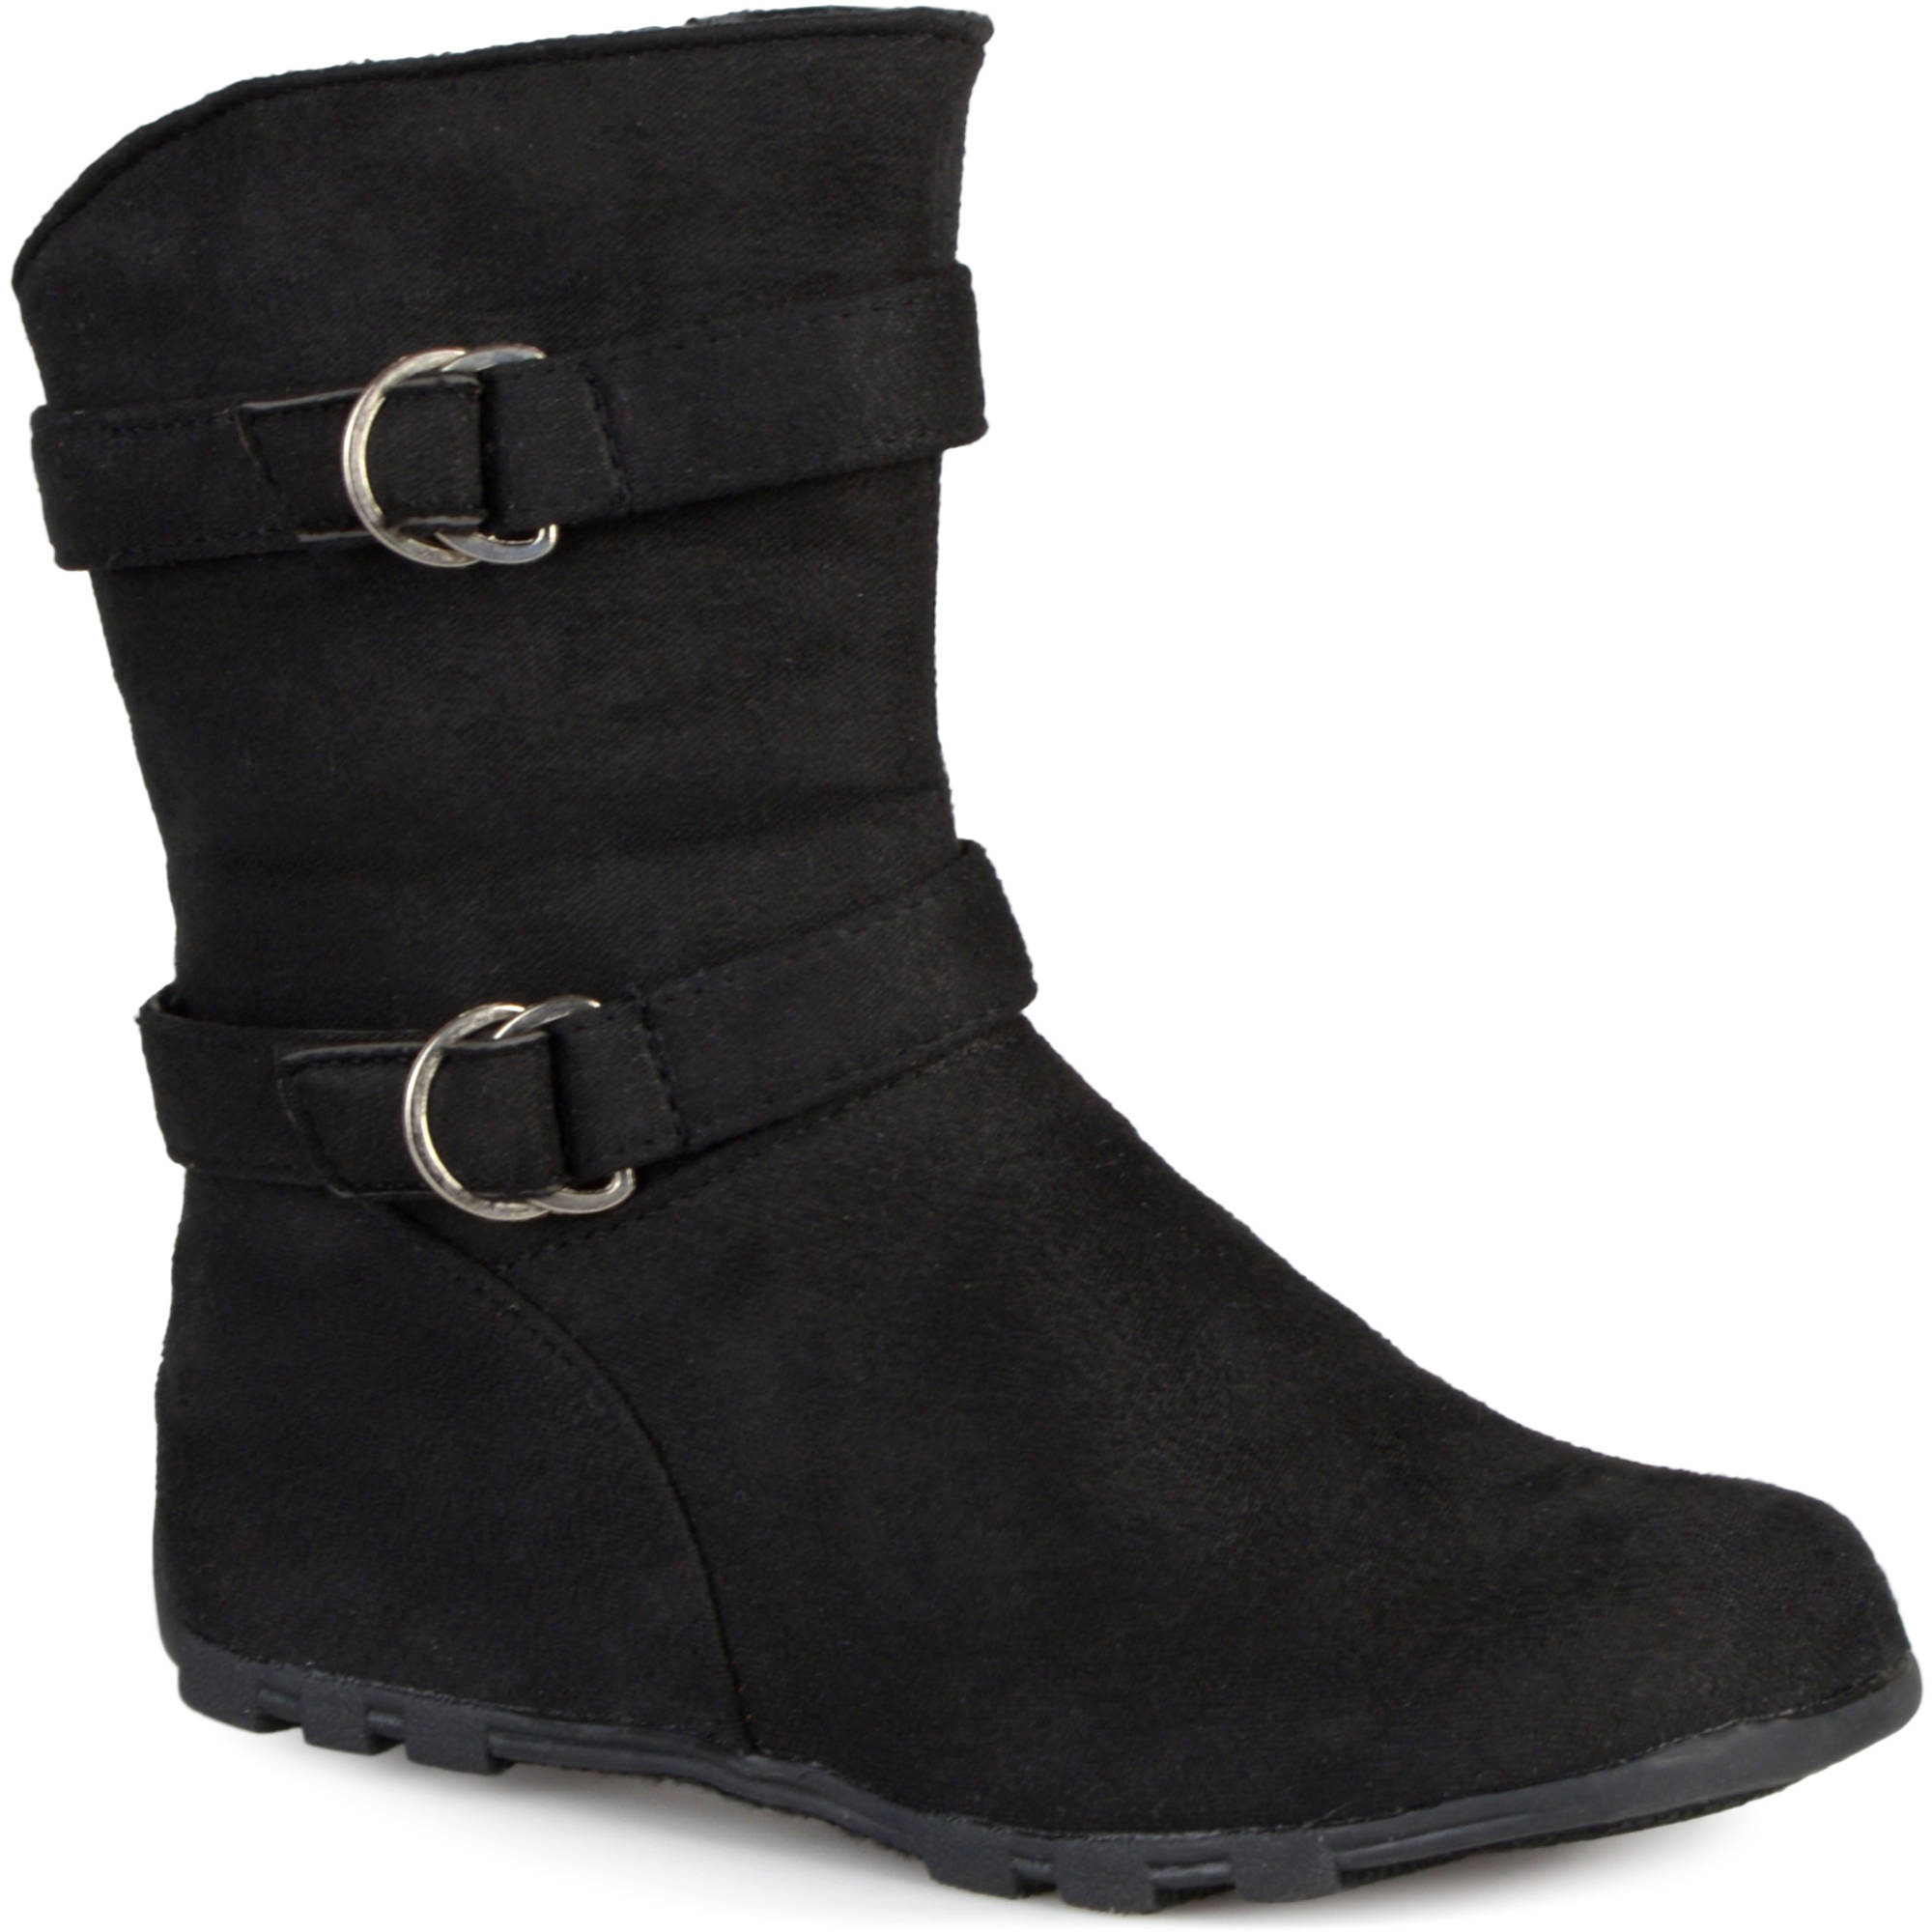 Brinley Co Kids Girl's Buckle and Strap Accent Mid-calf Boots